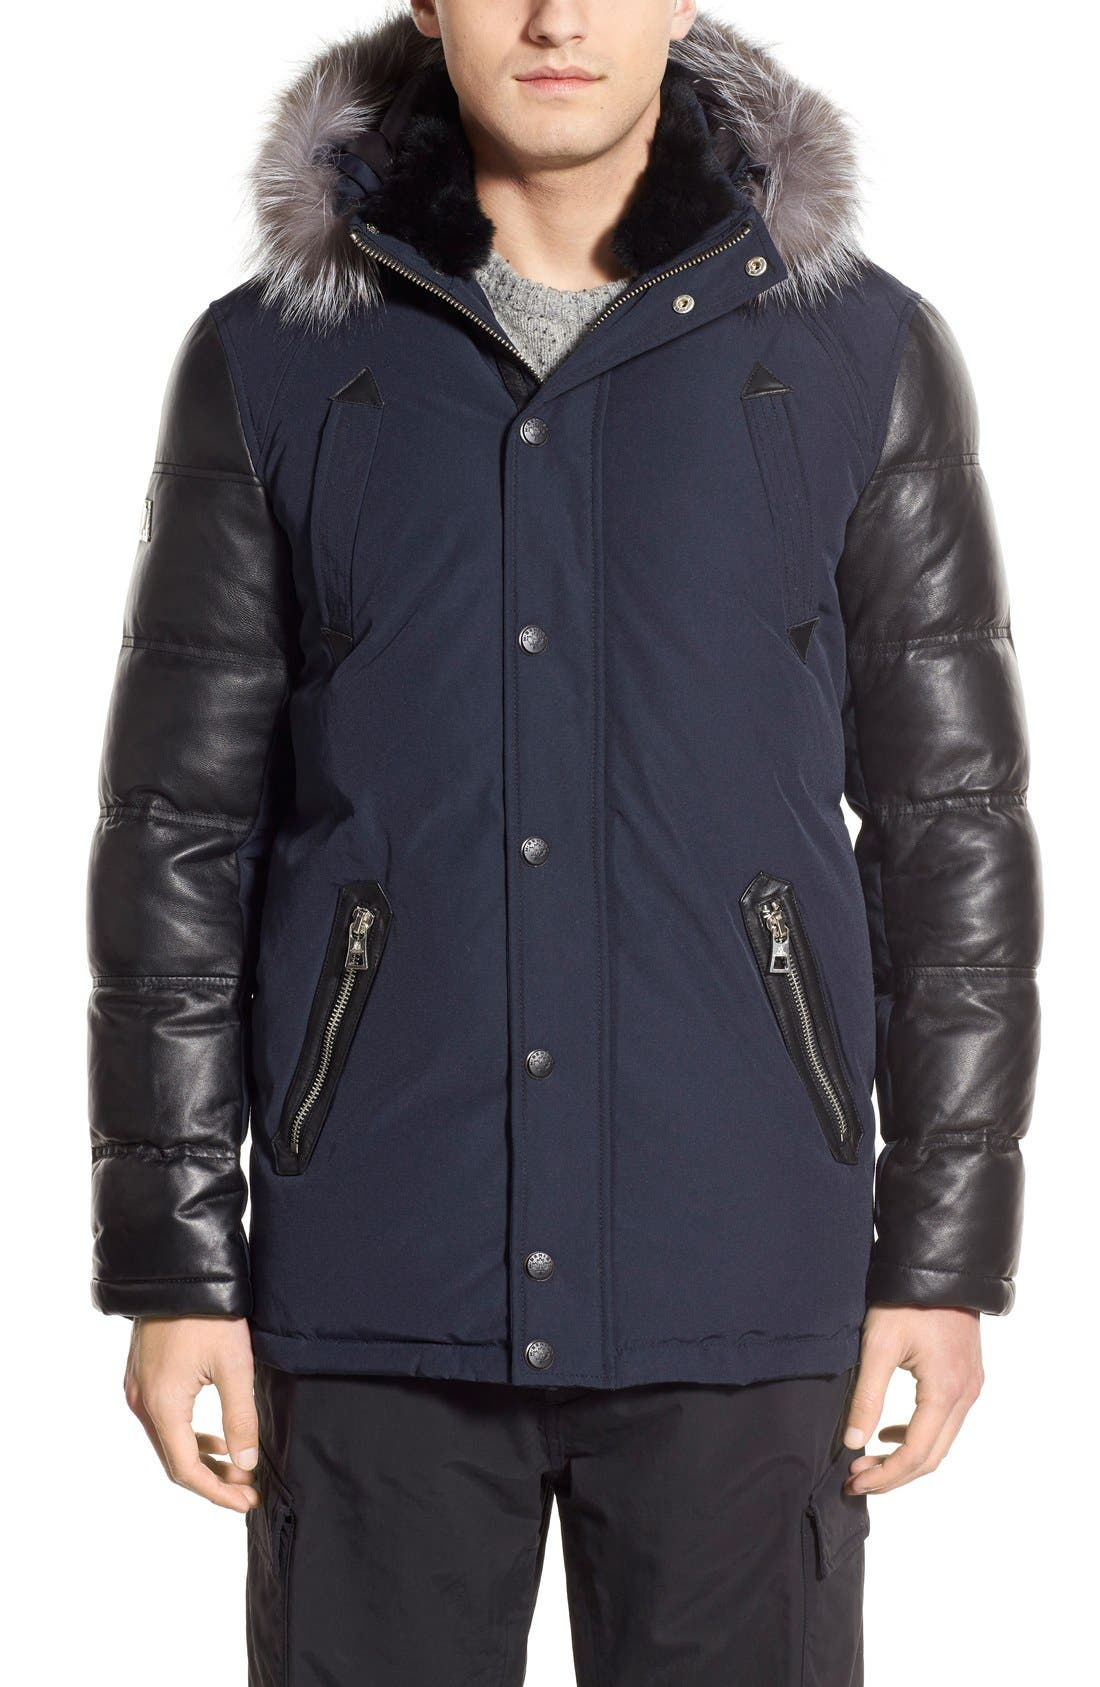 M. BENISTI Water Resistant Down Jacket with Genuine